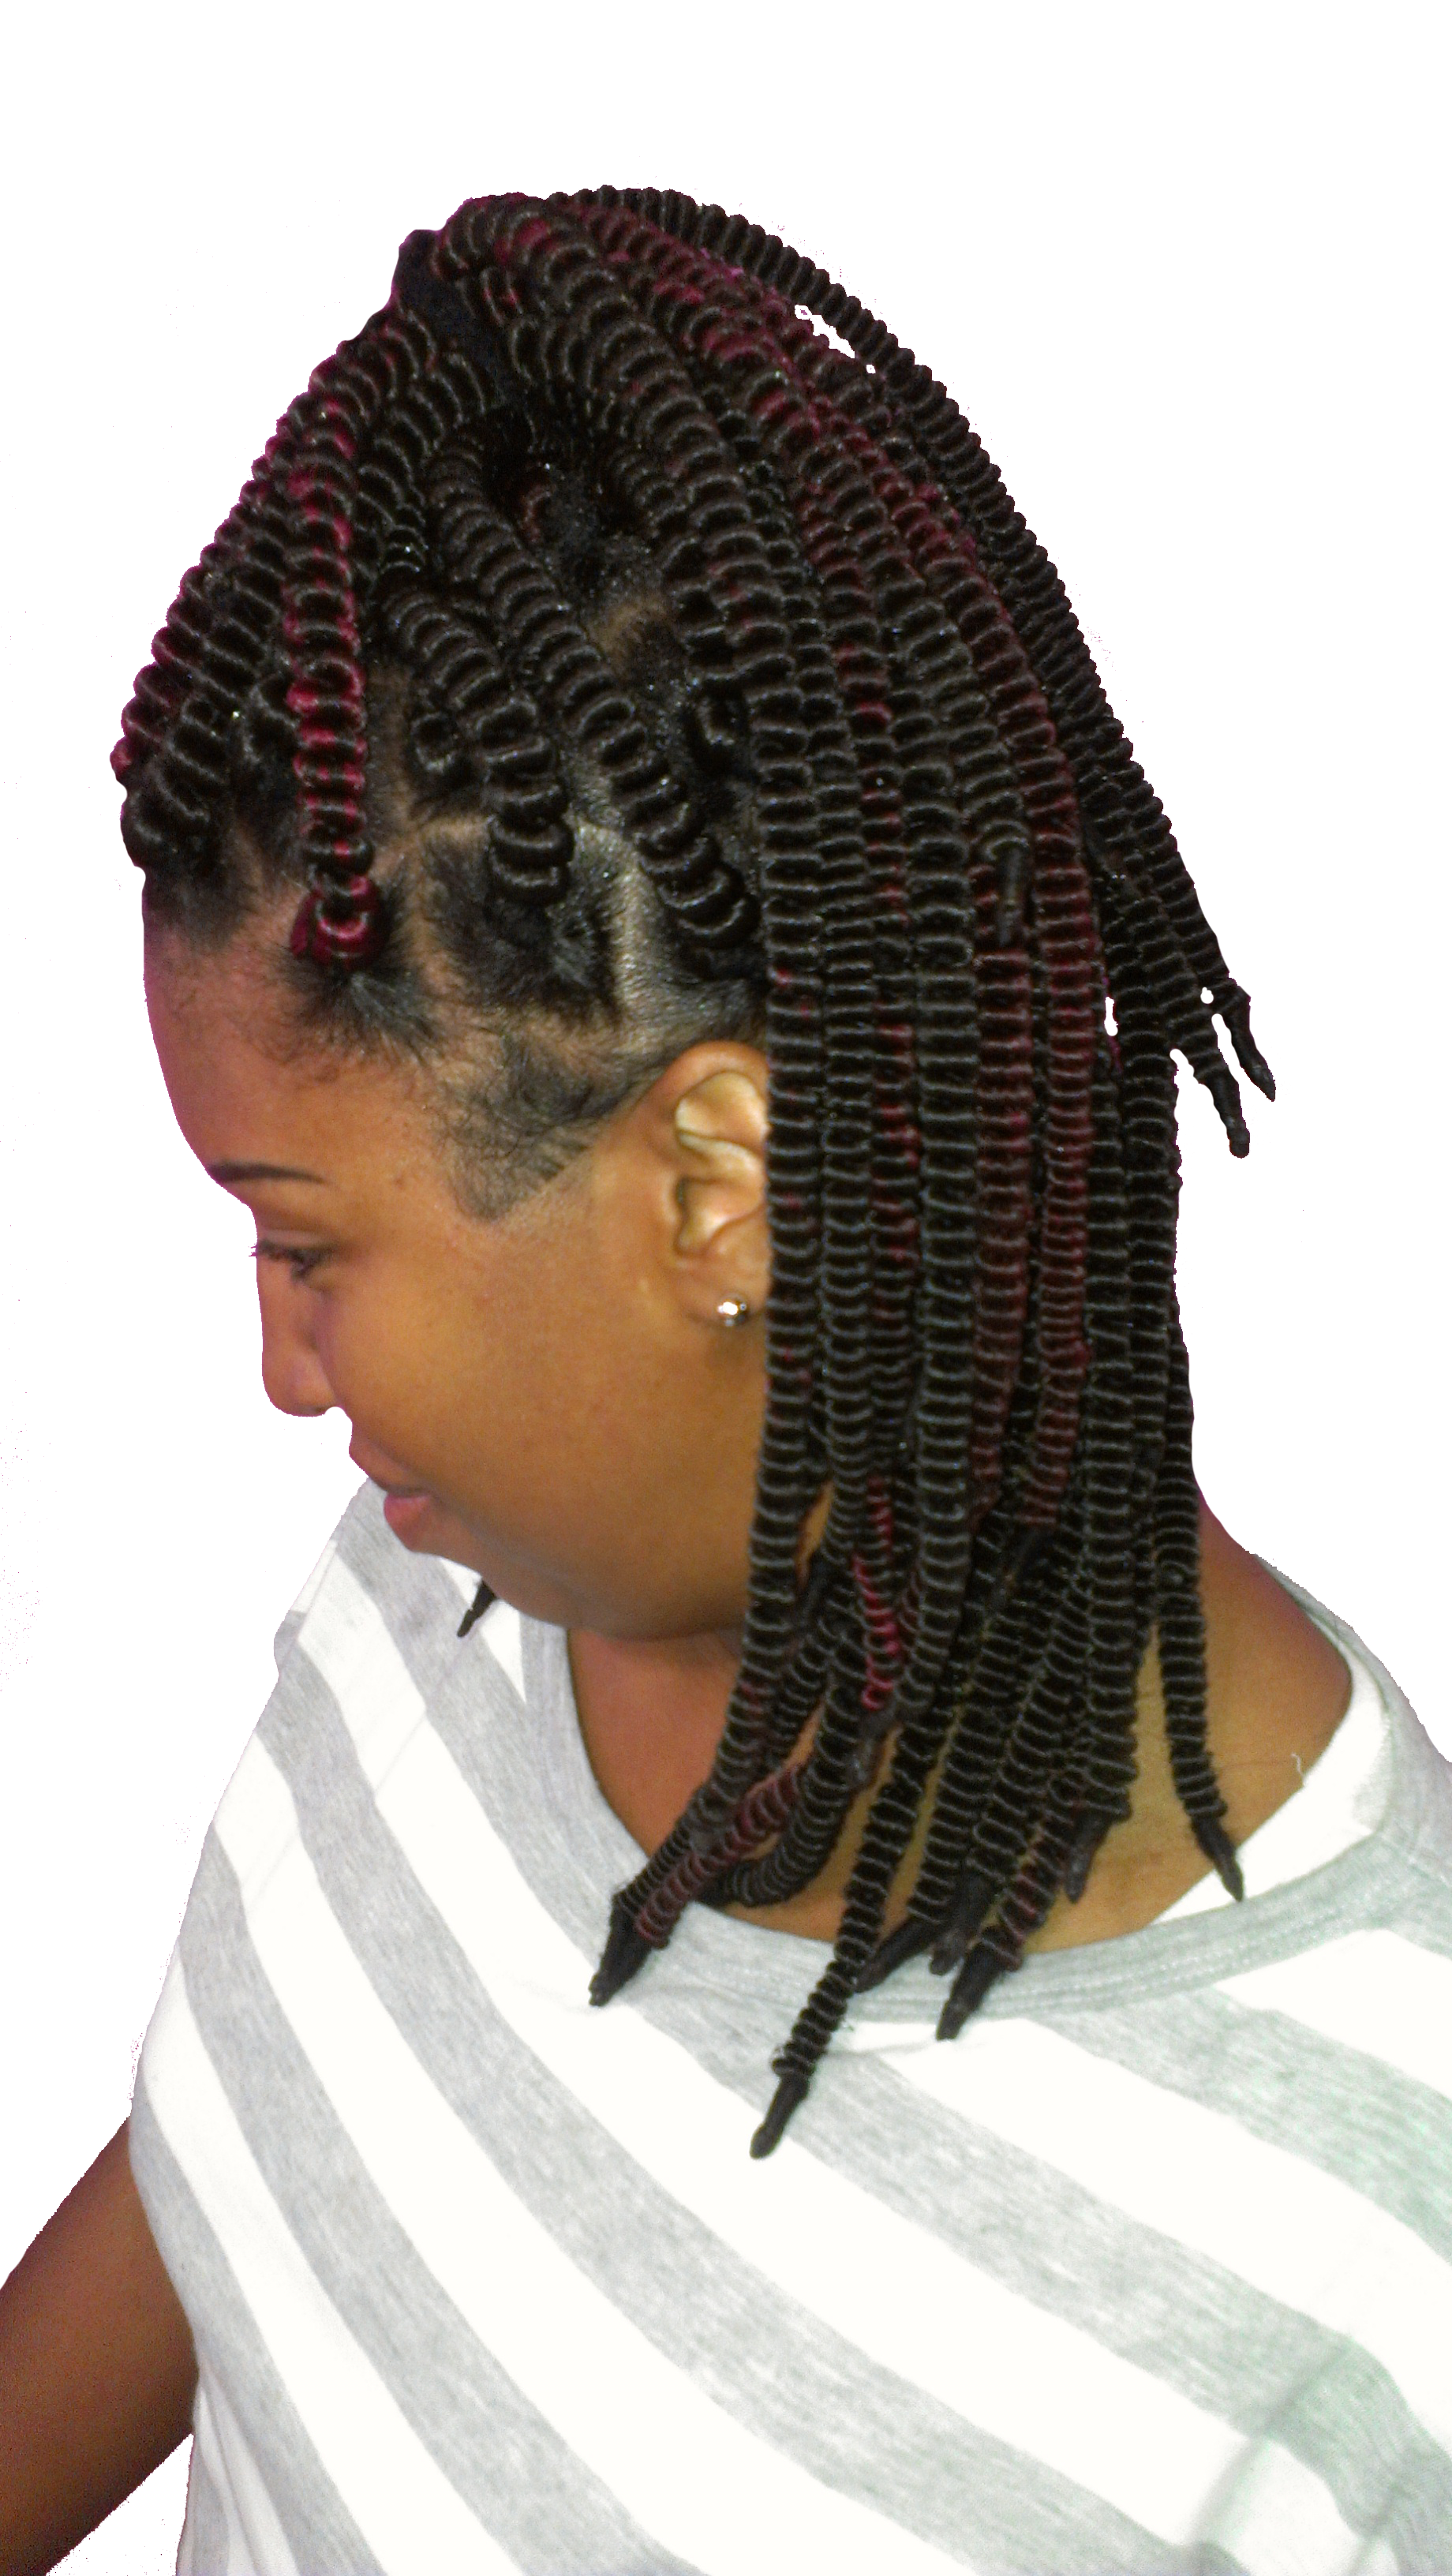 African Hair Braiding Salons Hair Braiding Club